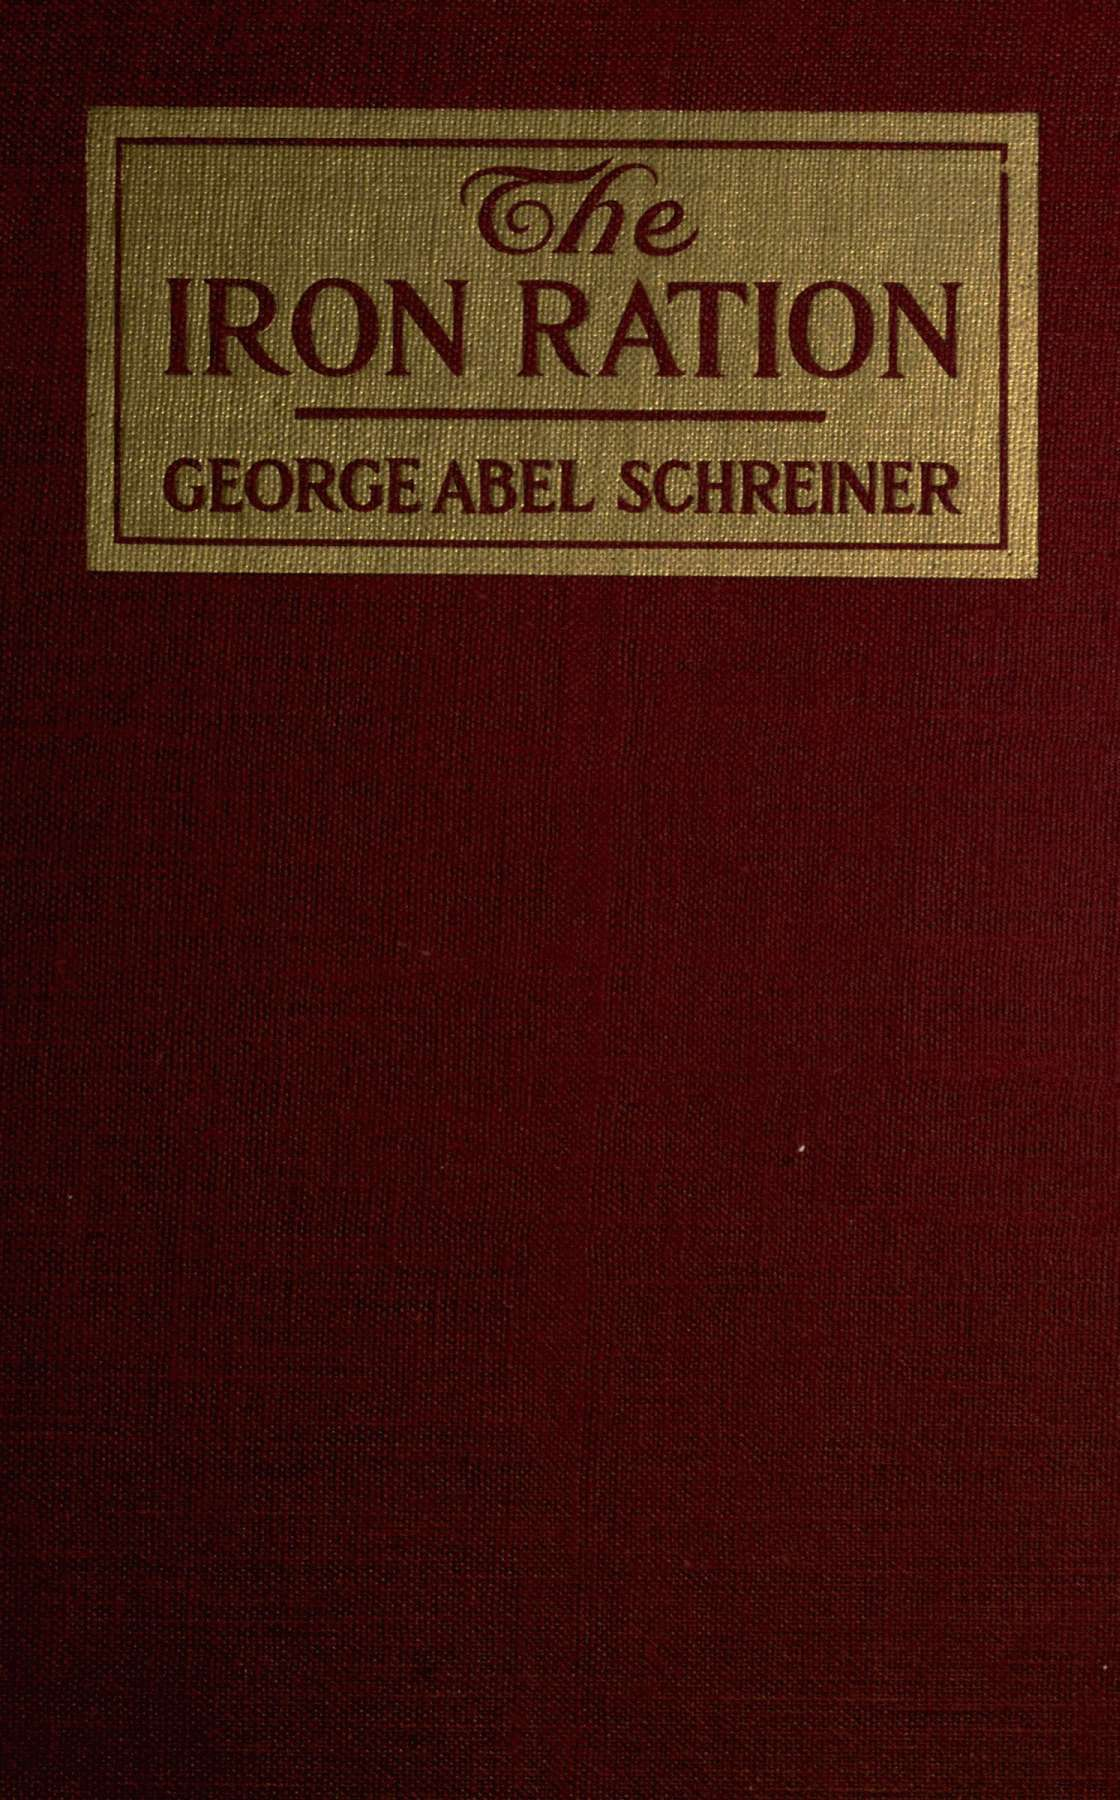 The project gutenberg ebook of the iron ration by george abel schreiner the iron ration fandeluxe Images